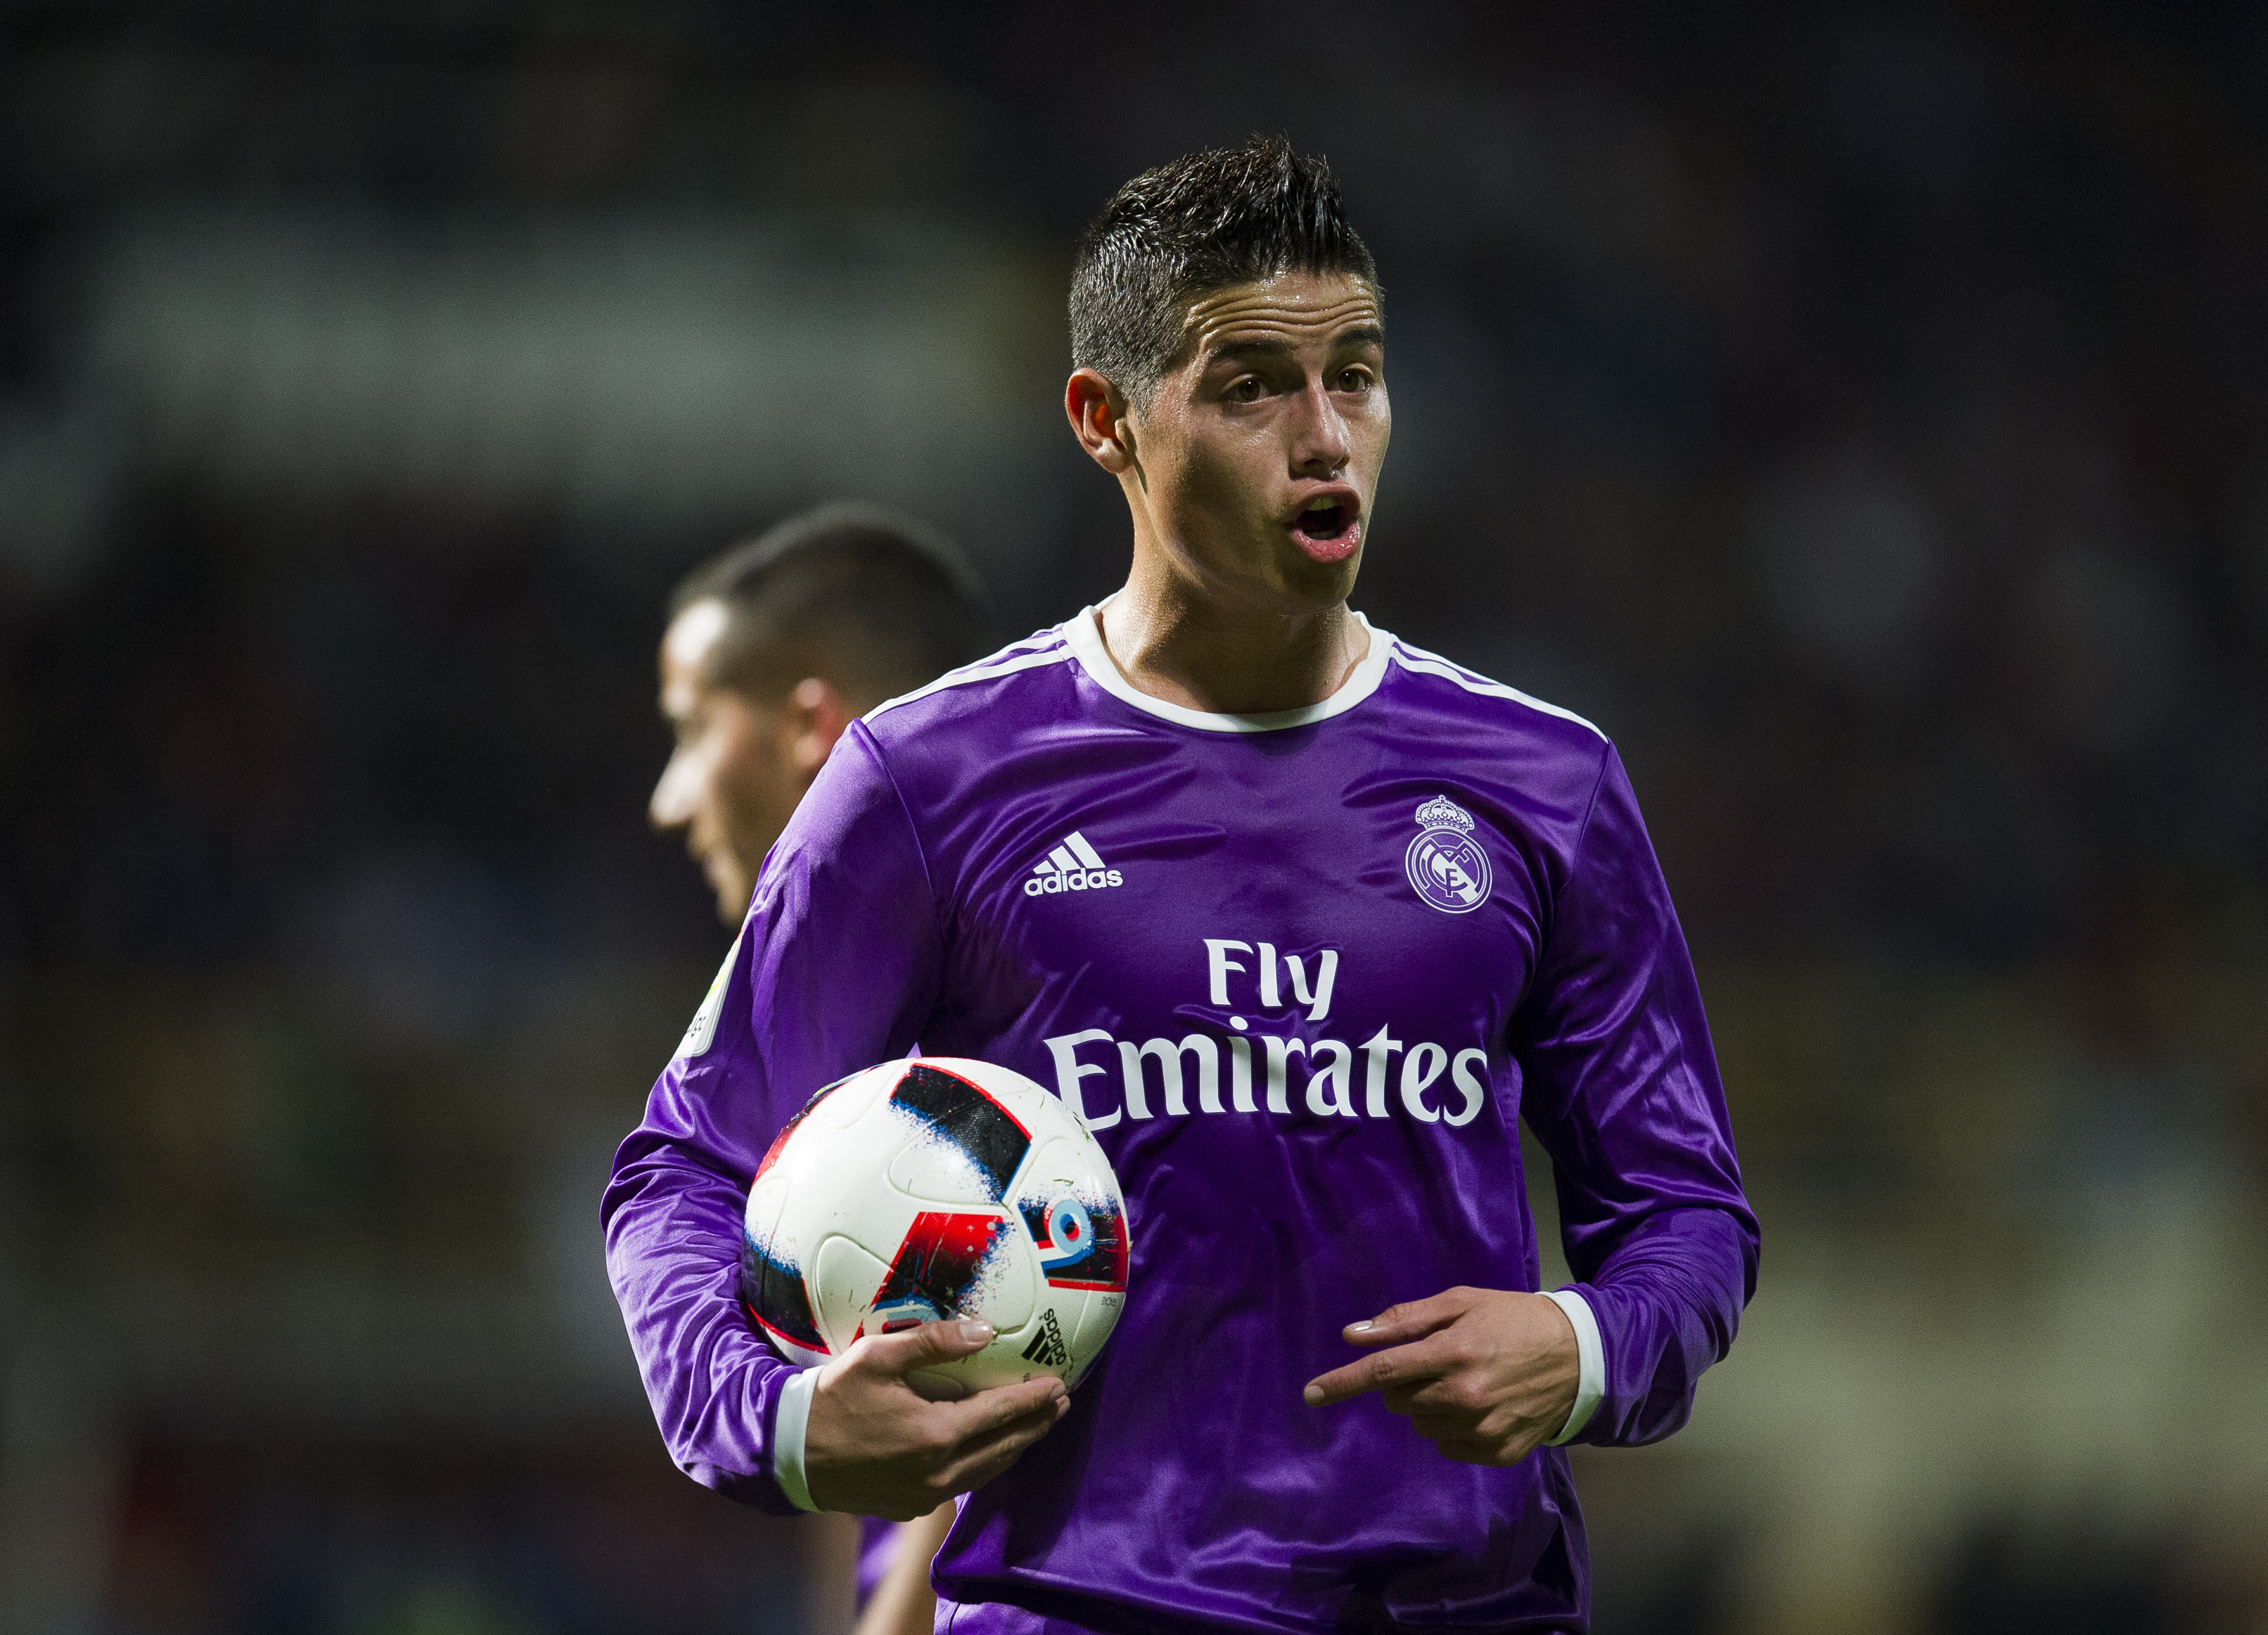 LEON, SPAIN - OCTOBER 26: James Rodriguez of Real Madrid reacts during the Copa del Rey Round of 32 match between Cultural Leonesa and Real Madrid CF at Reino de Leon Stadium on October 26, 2016 in Leon, Spain. (Photo by Juan Manuel Serrano Arce/Getty Images)